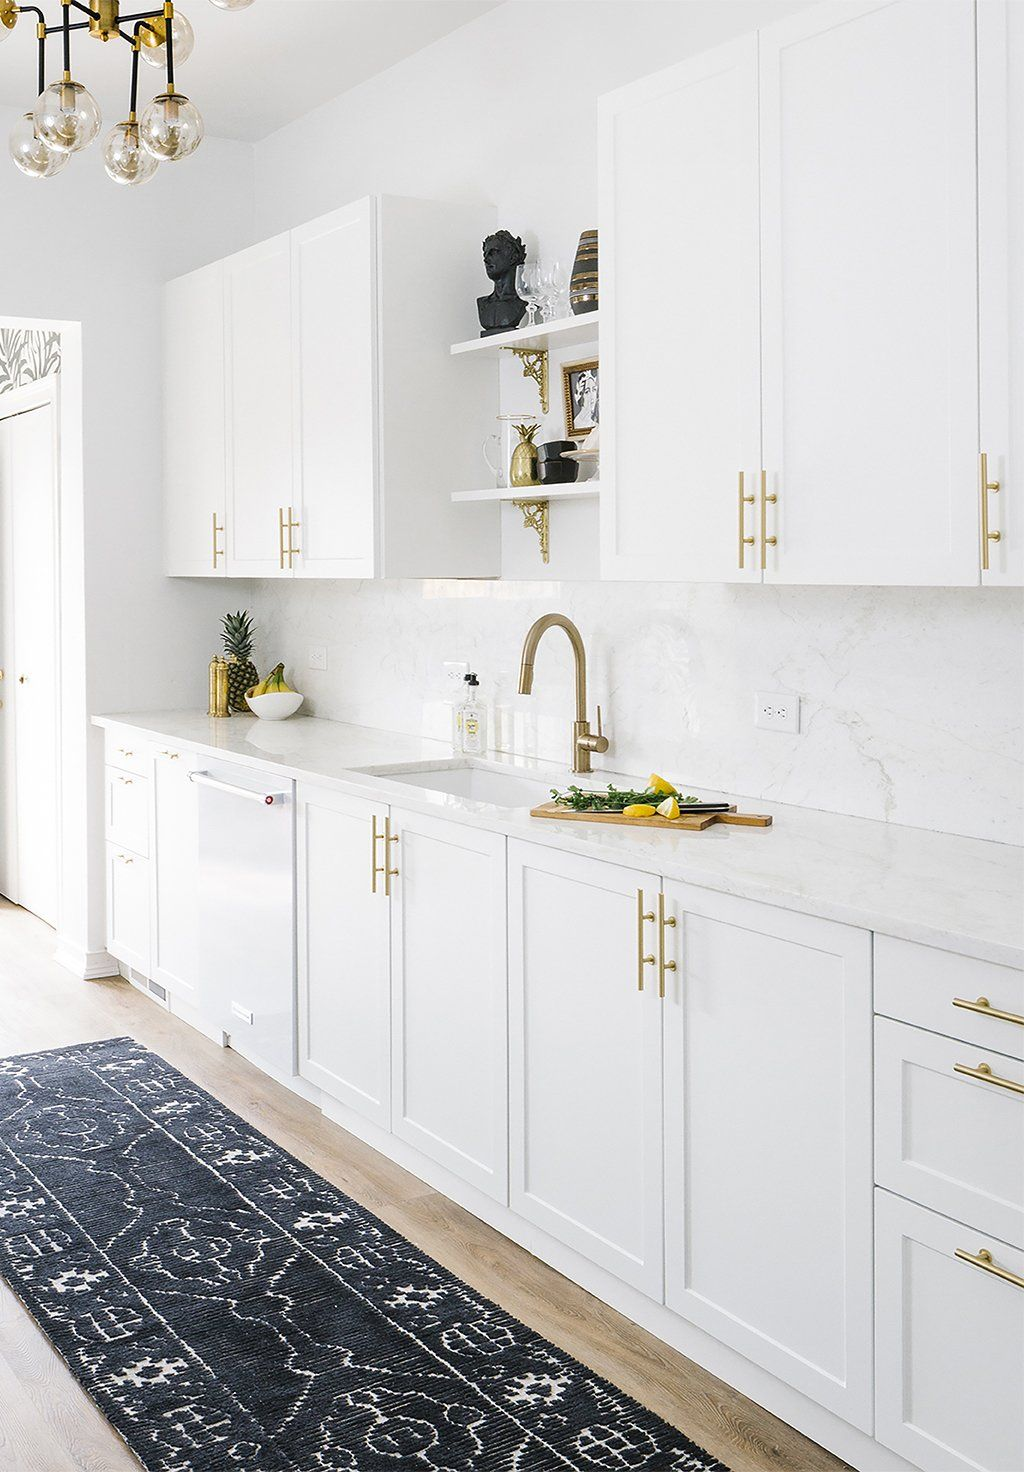 And Ikea Spring Sale... Now! in 2019 White shaker